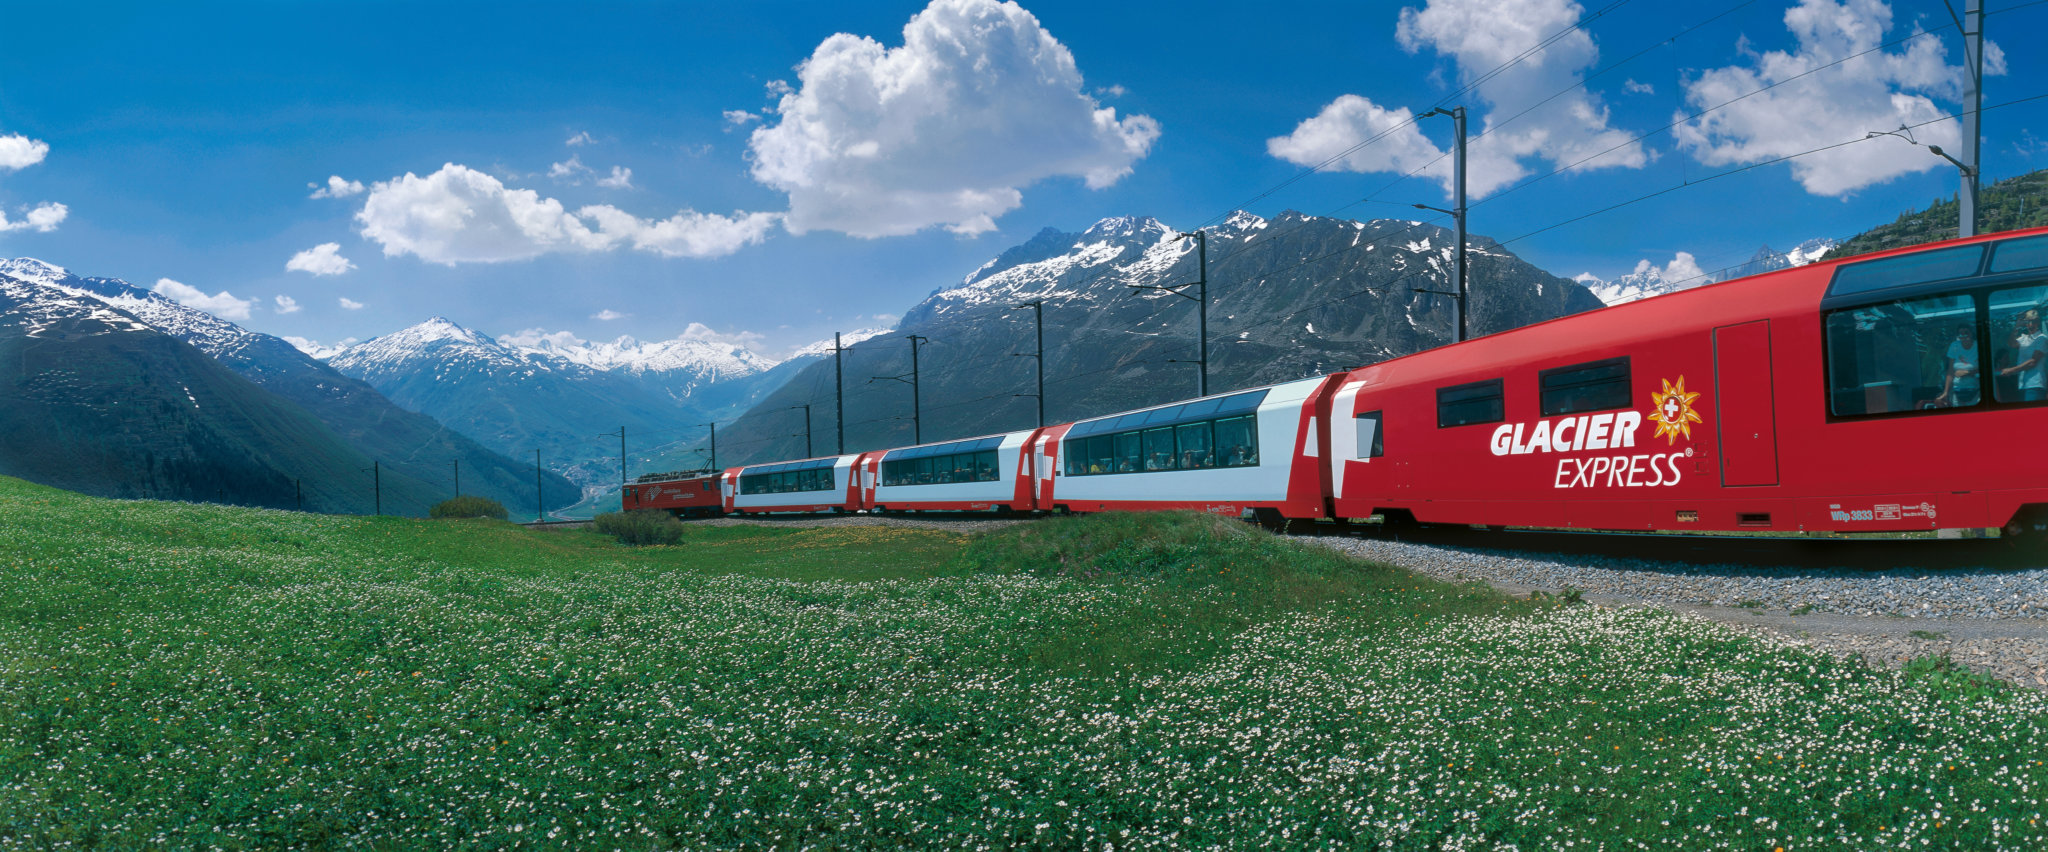 the glacier express scenic switzerland planet rail. Black Bedroom Furniture Sets. Home Design Ideas